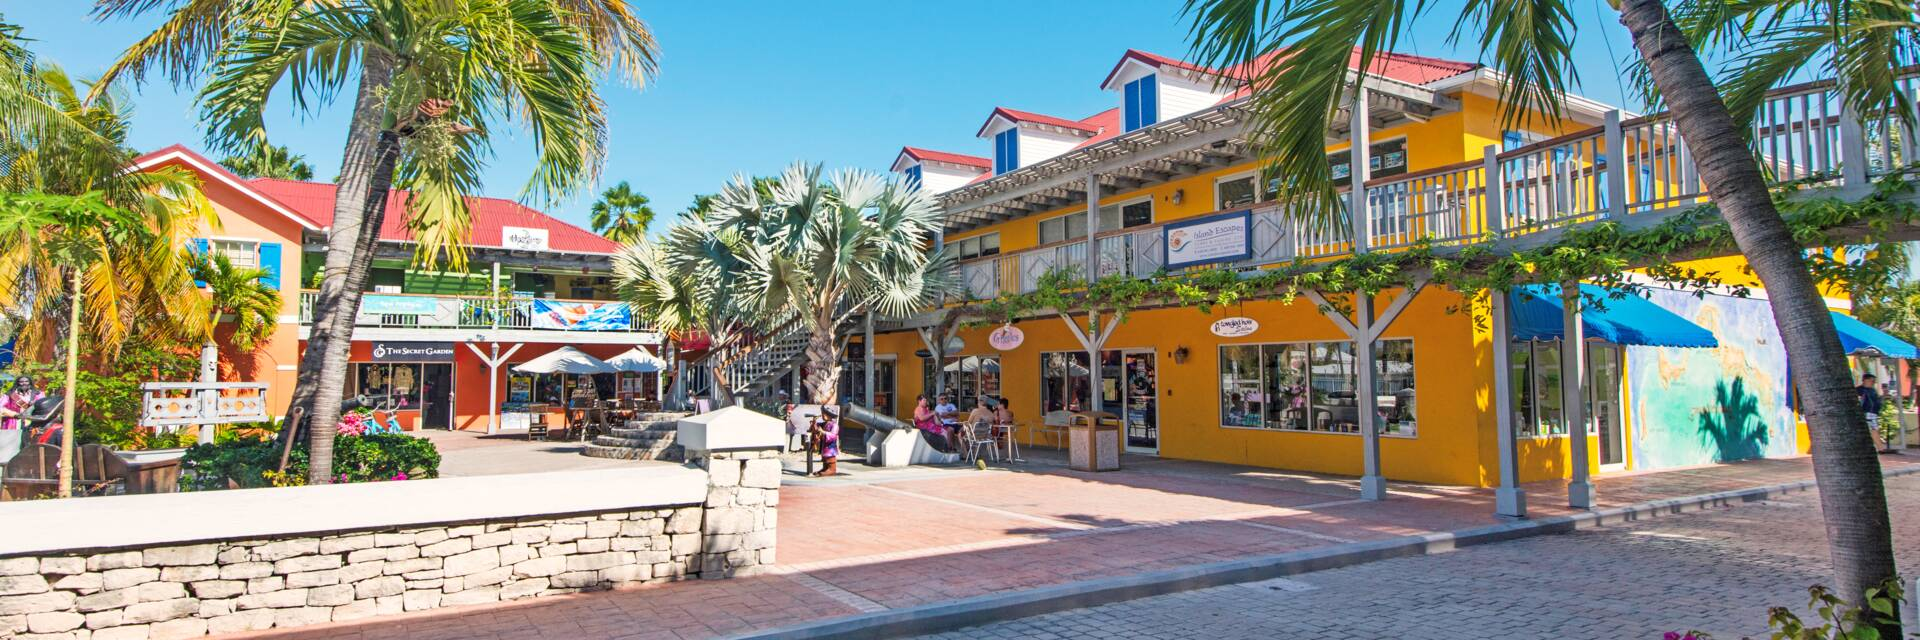 providenciales shopping visit turks and caicos islands